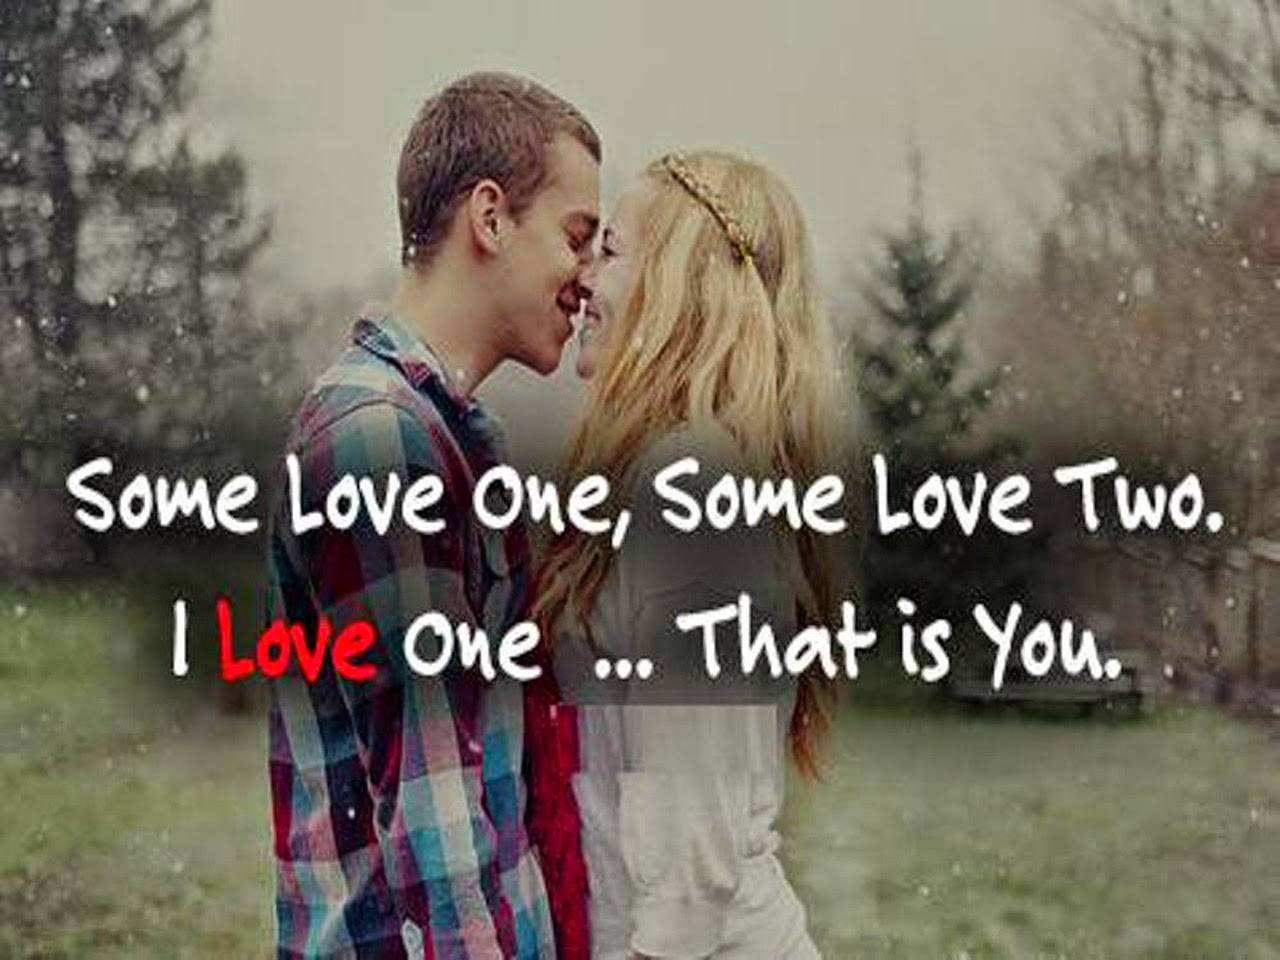 Romantic Quotes: Romantic Quotes For Girlfriend To Show Your Love